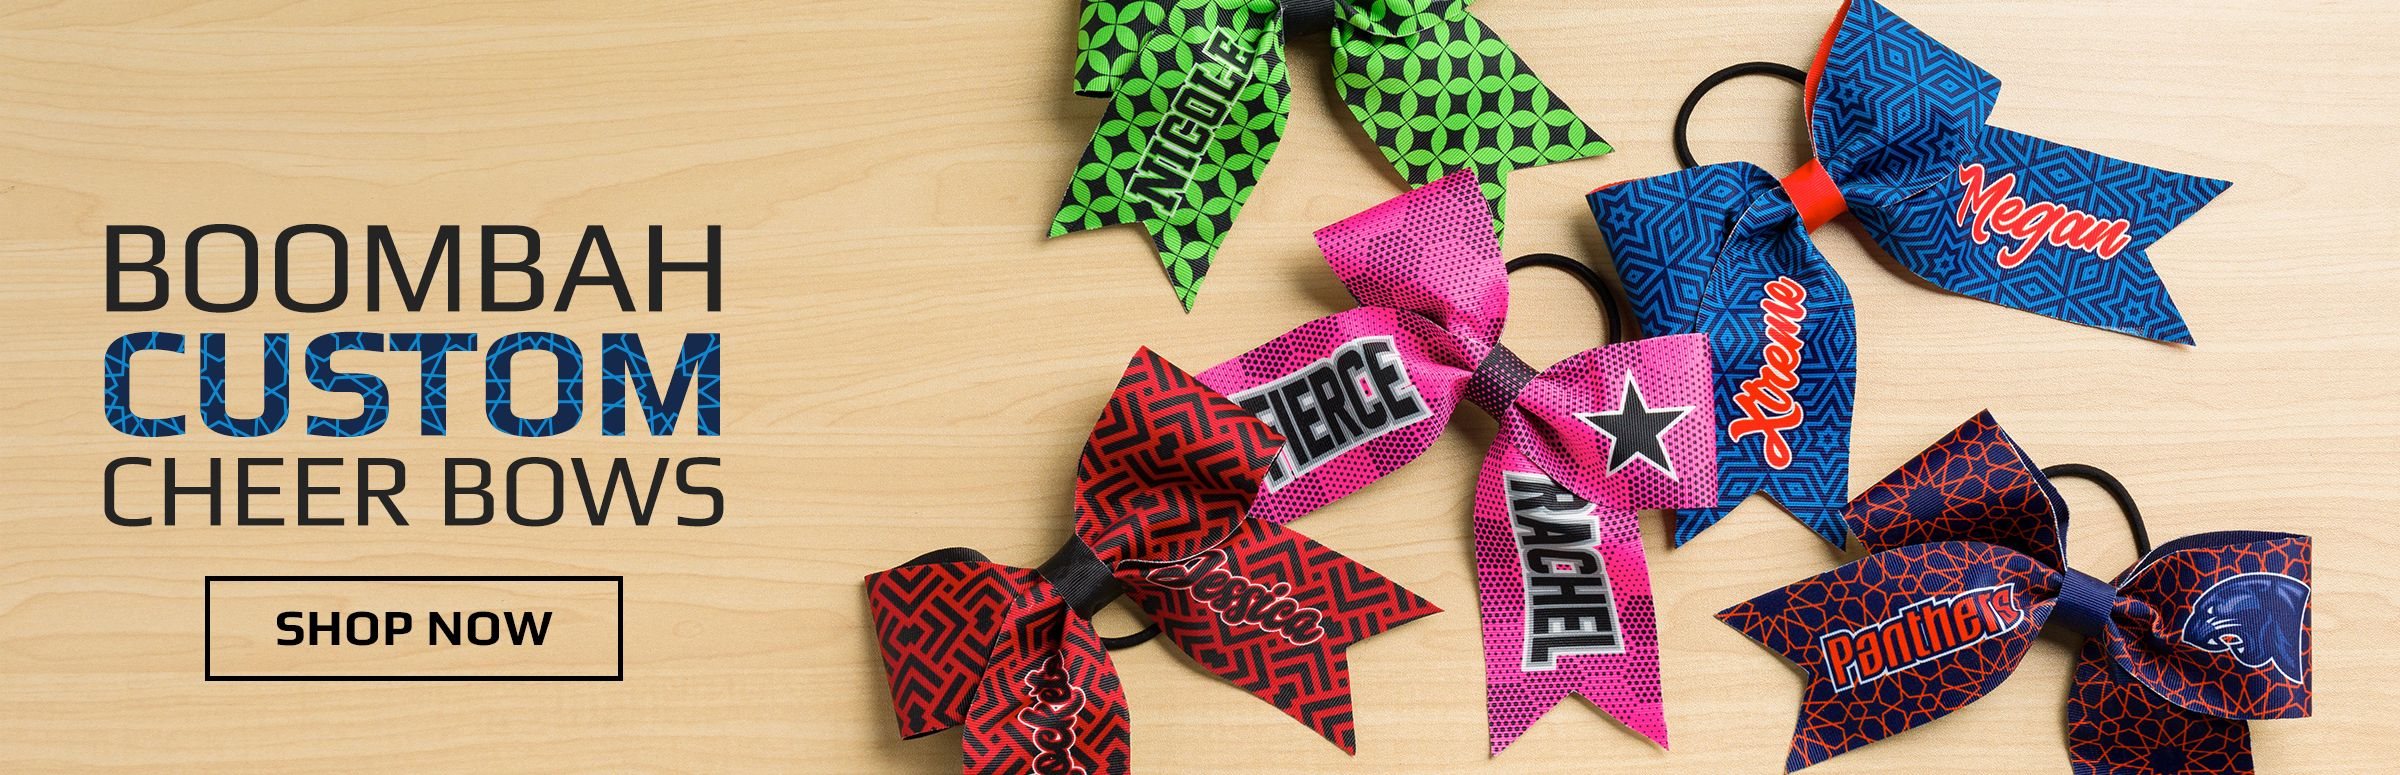 Boombah Custom Cheer Bows